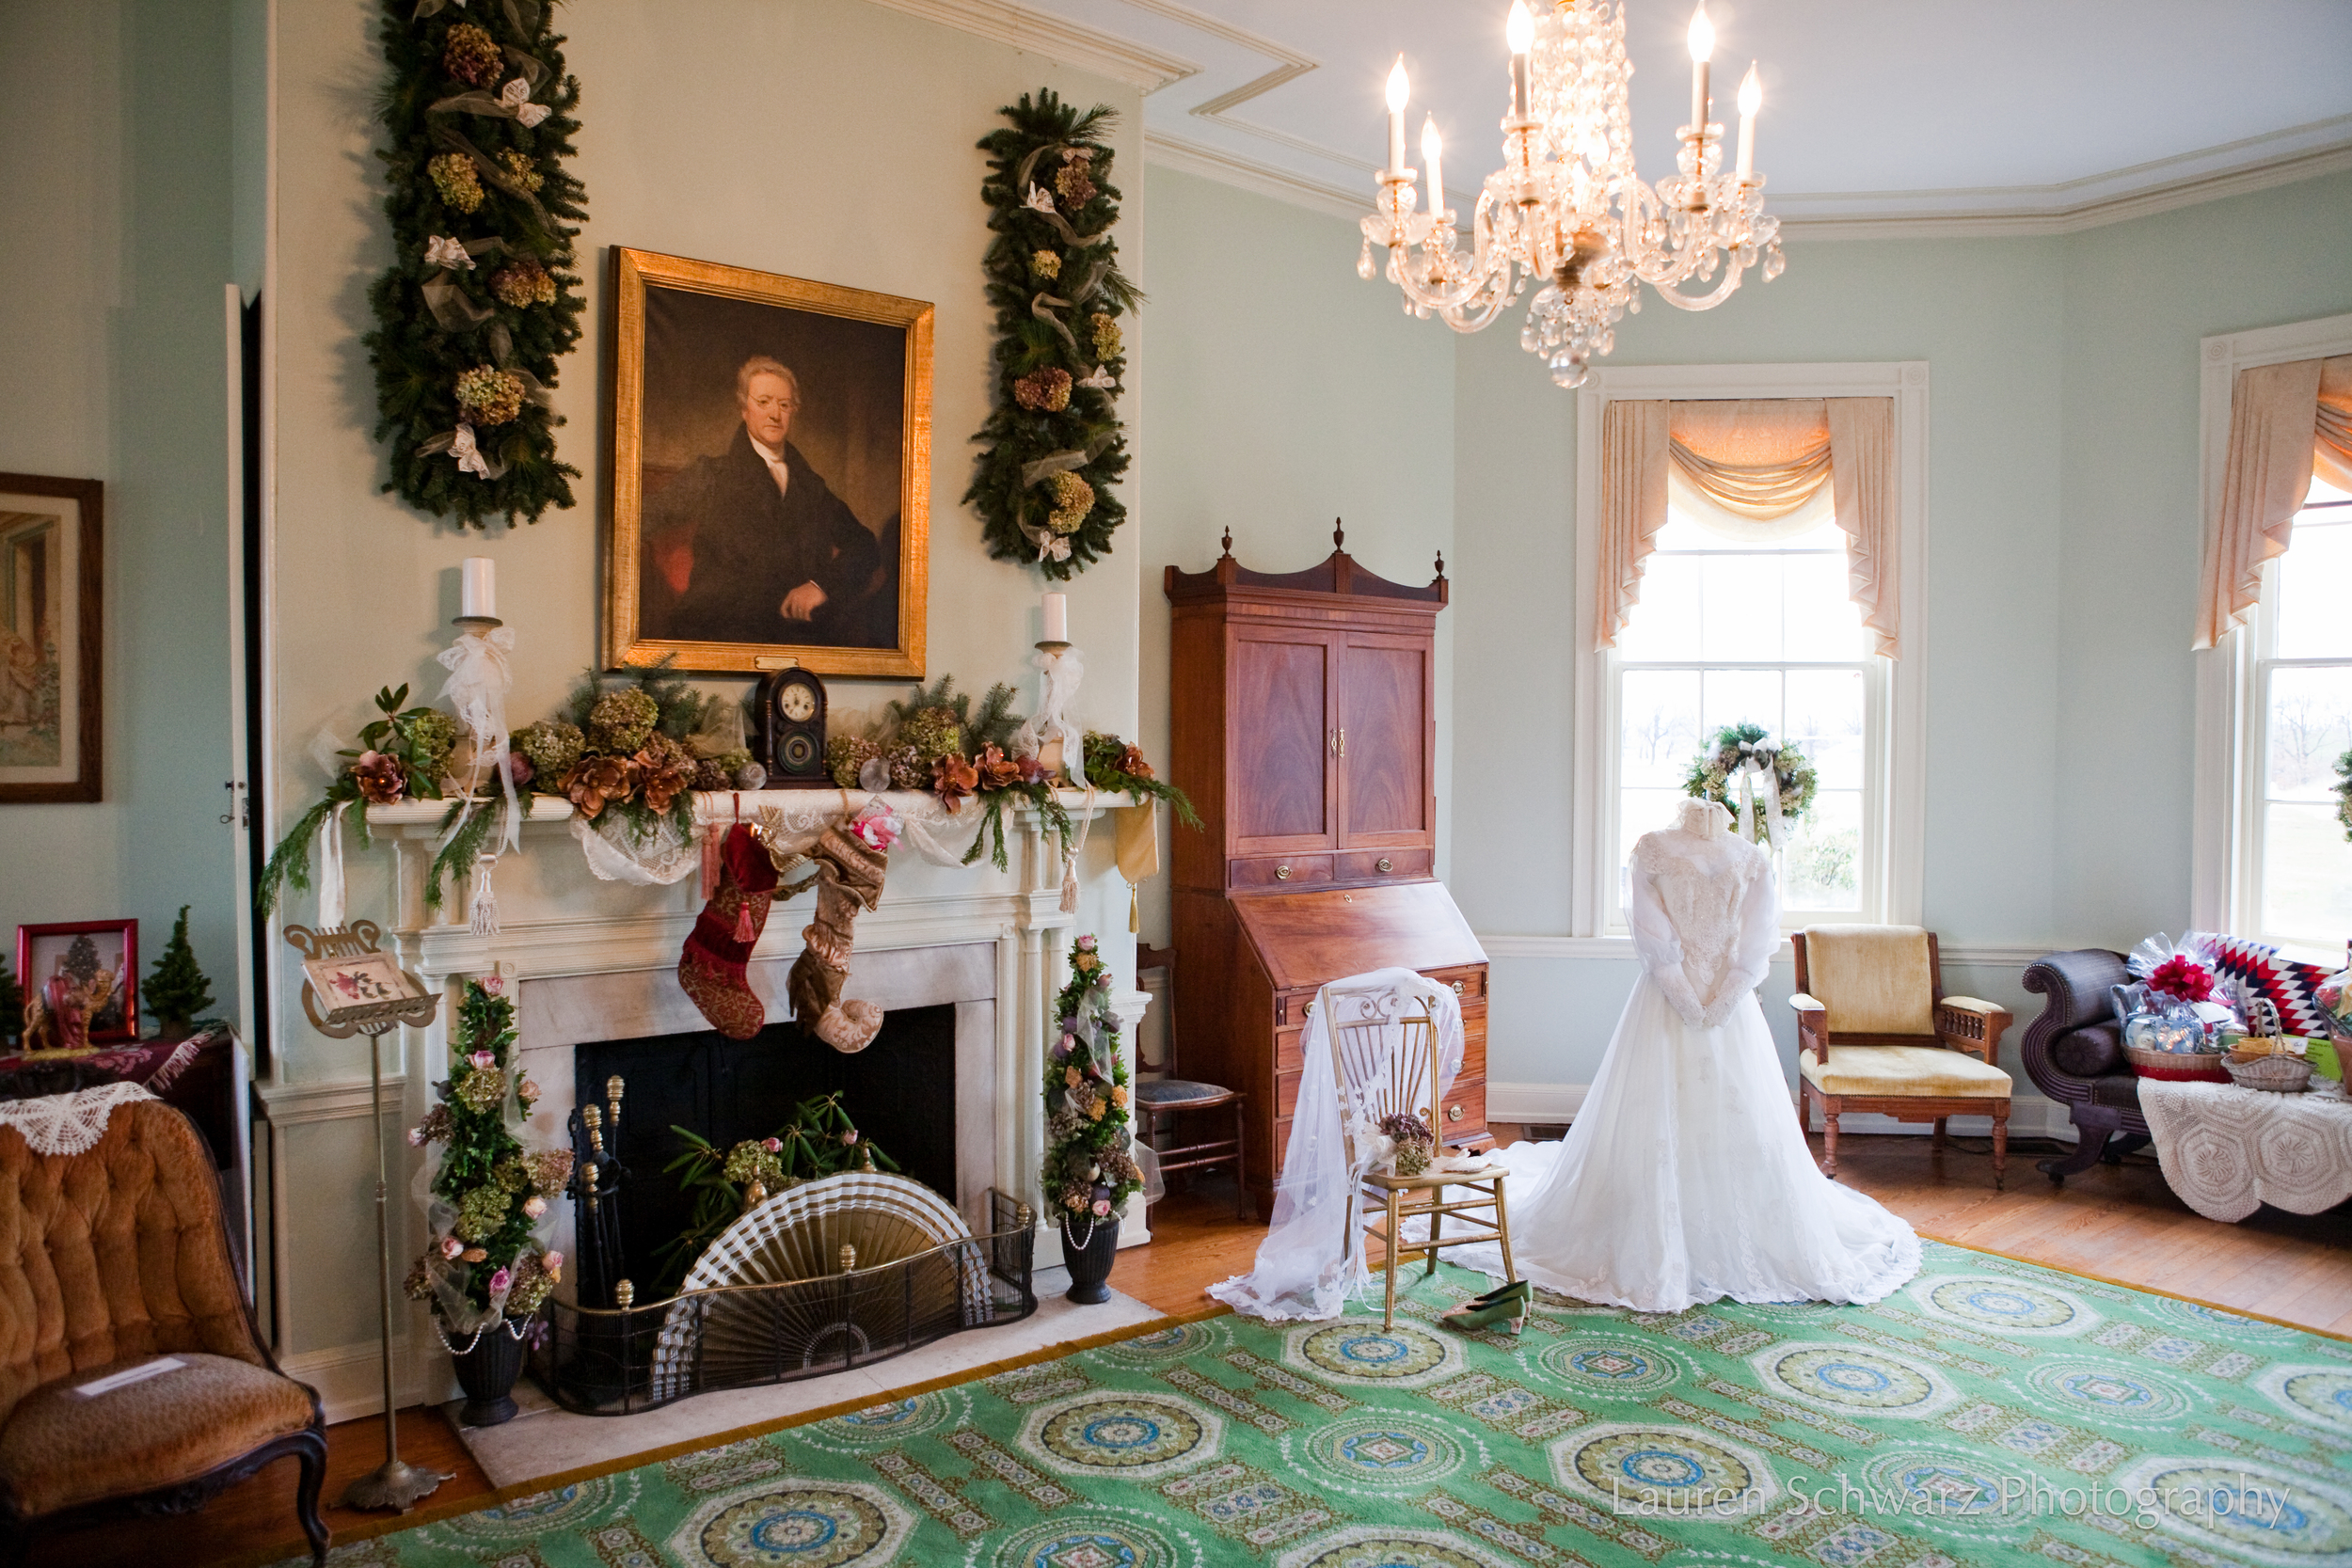 Charms of Fairmount Park, Lauren Schwartz Photography